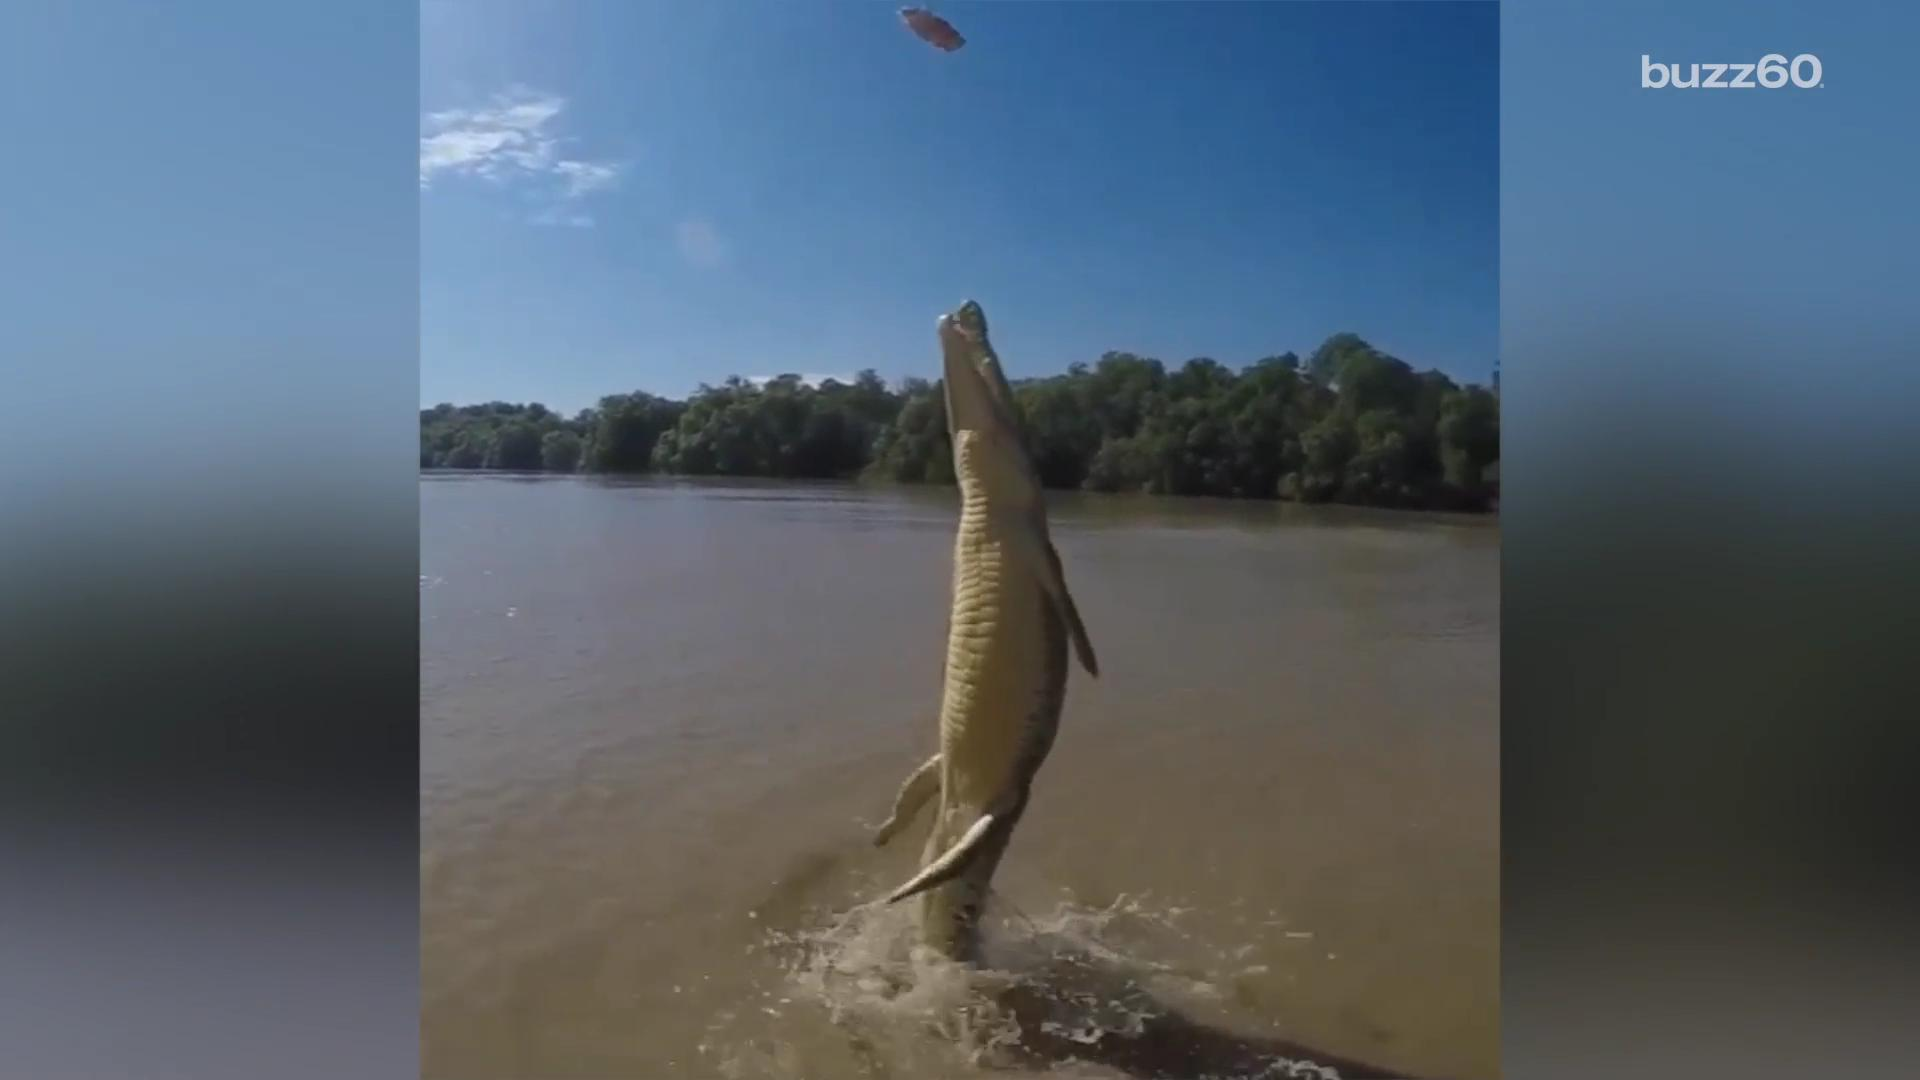 Watching this croc launch itself out of the water will give you serious nightmares